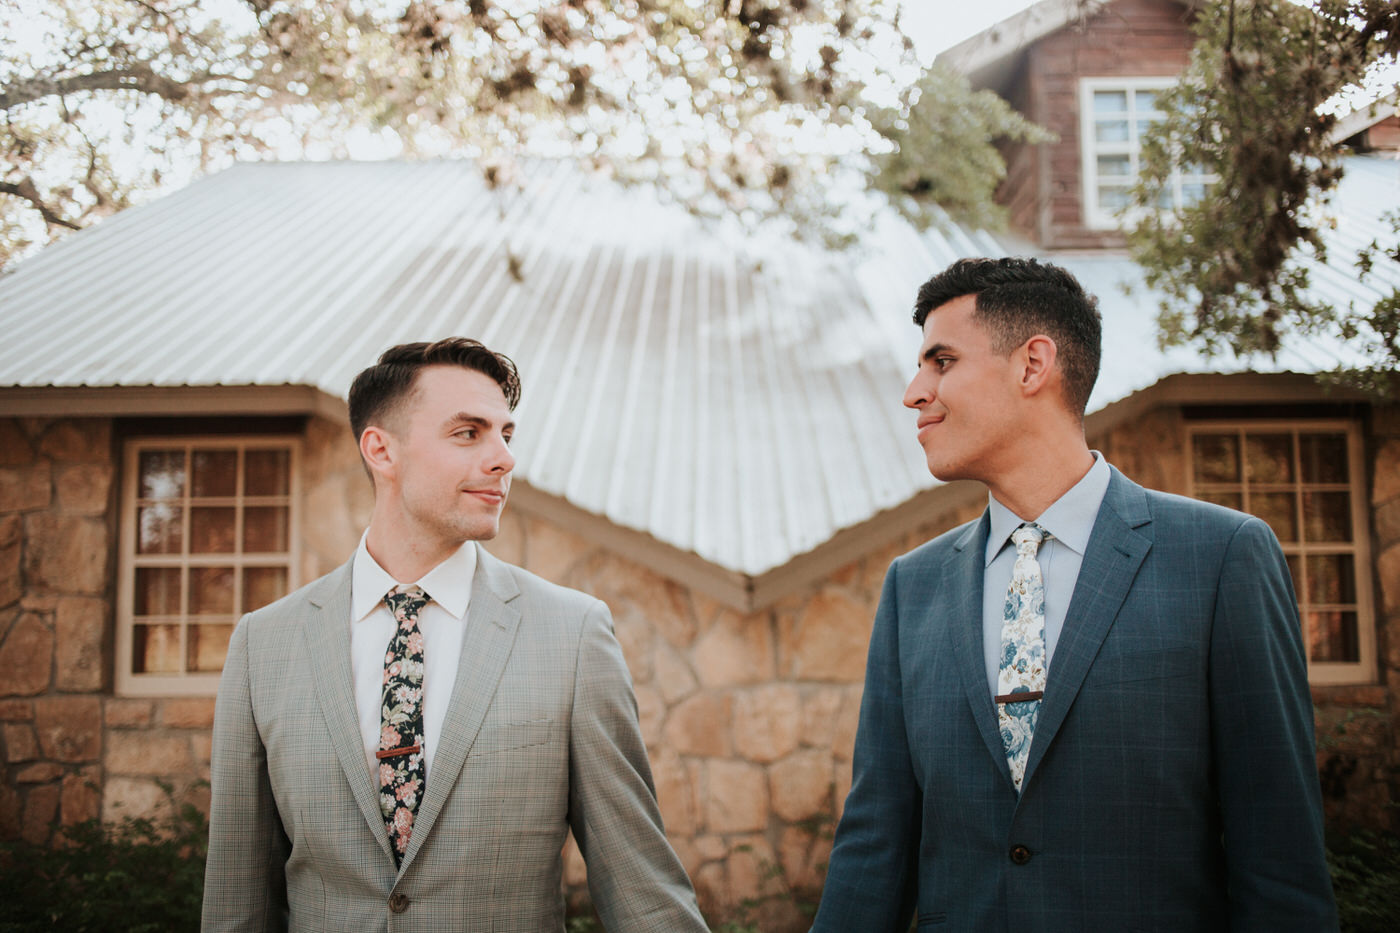 Grooms at Texas hill country wedding